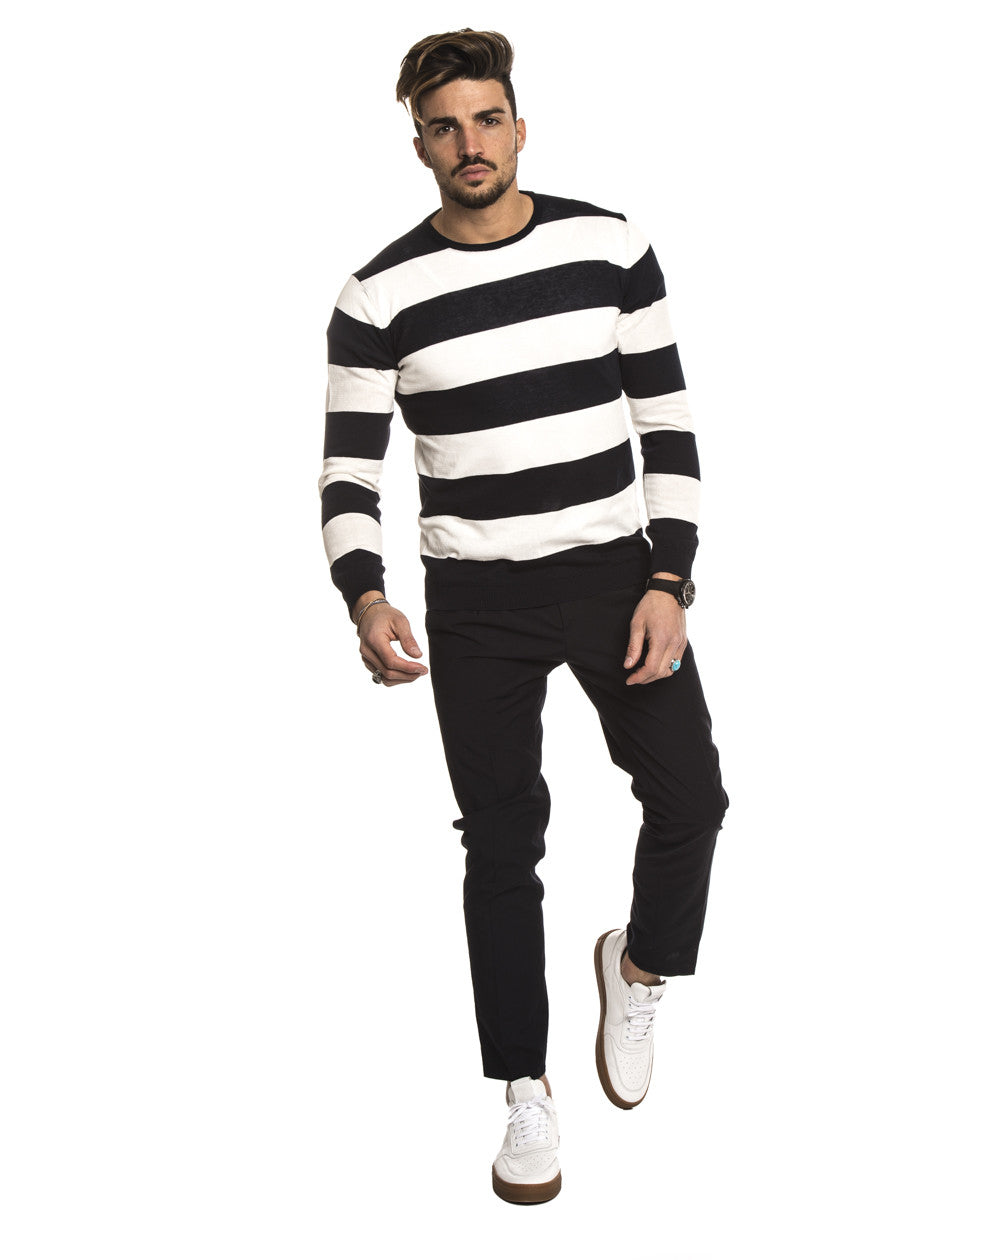 MEN'S CLOTHING | WHITE AND BLUE STRIPED SWEATER | NOHOW STREET ...